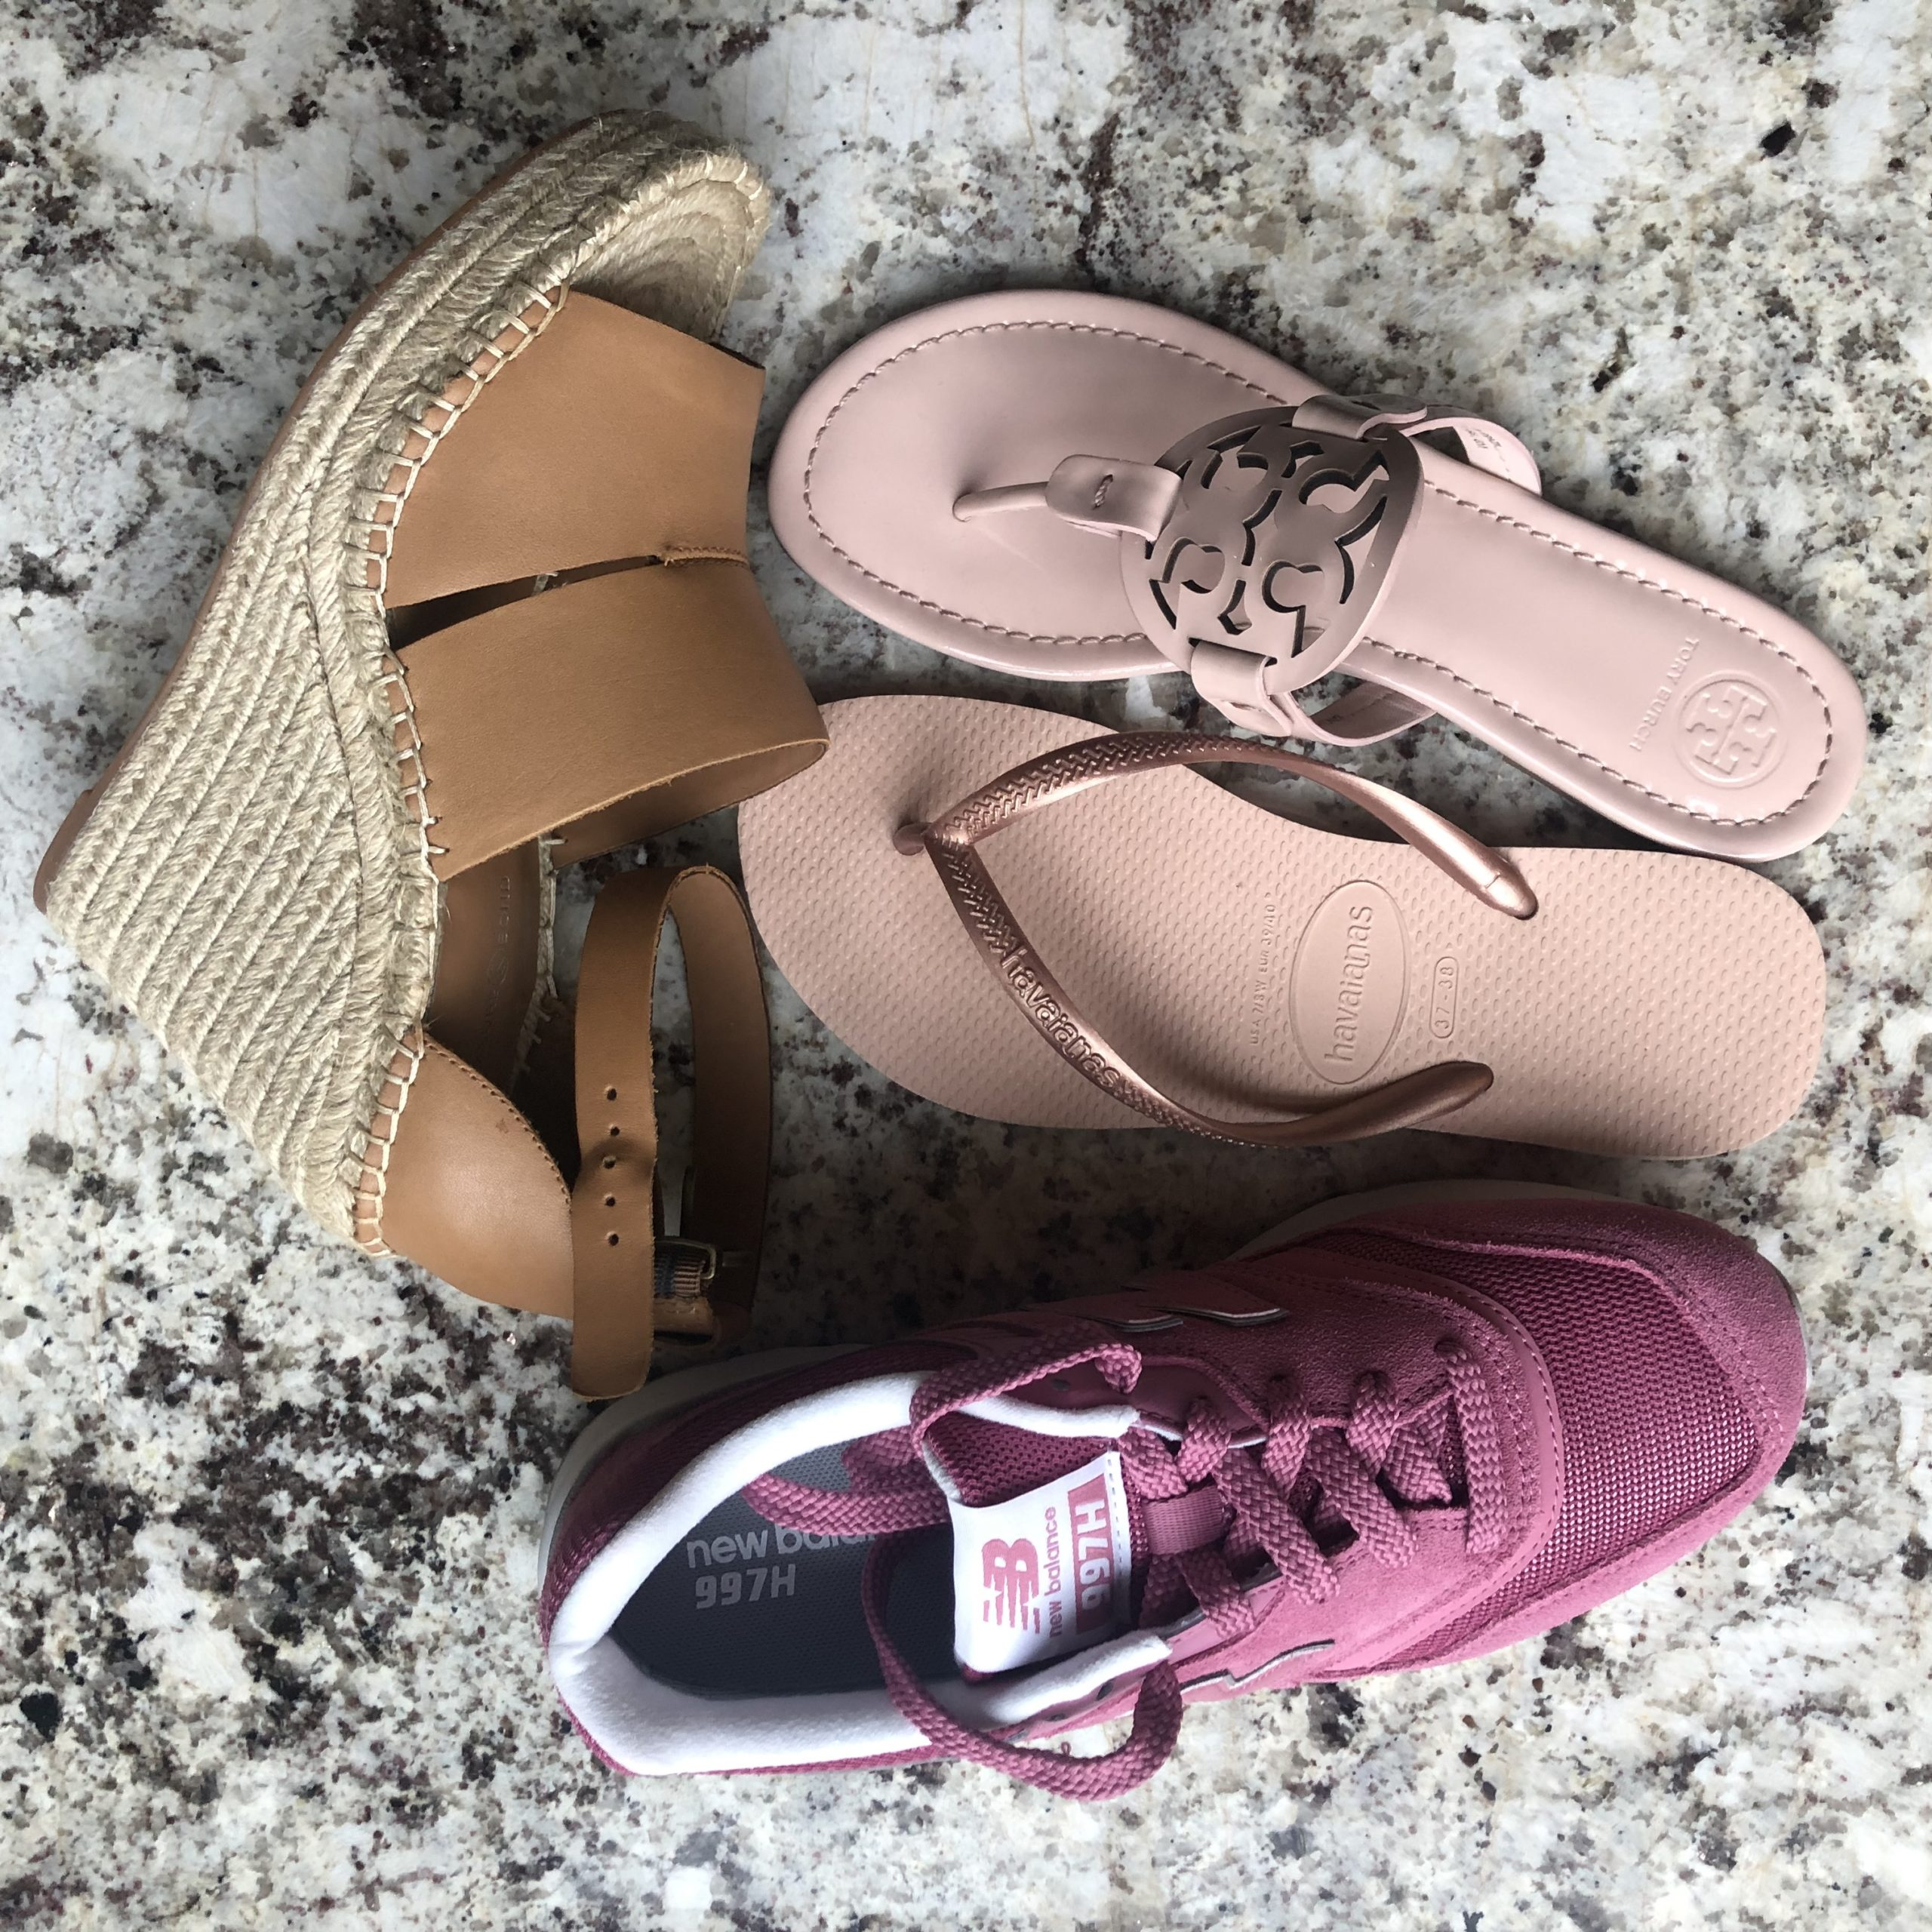 effd83bdd I decided to share my top picks for you this summer from the Nordstrom shoe  department. Ready? These FOUR pairs will cover you for just about every ...